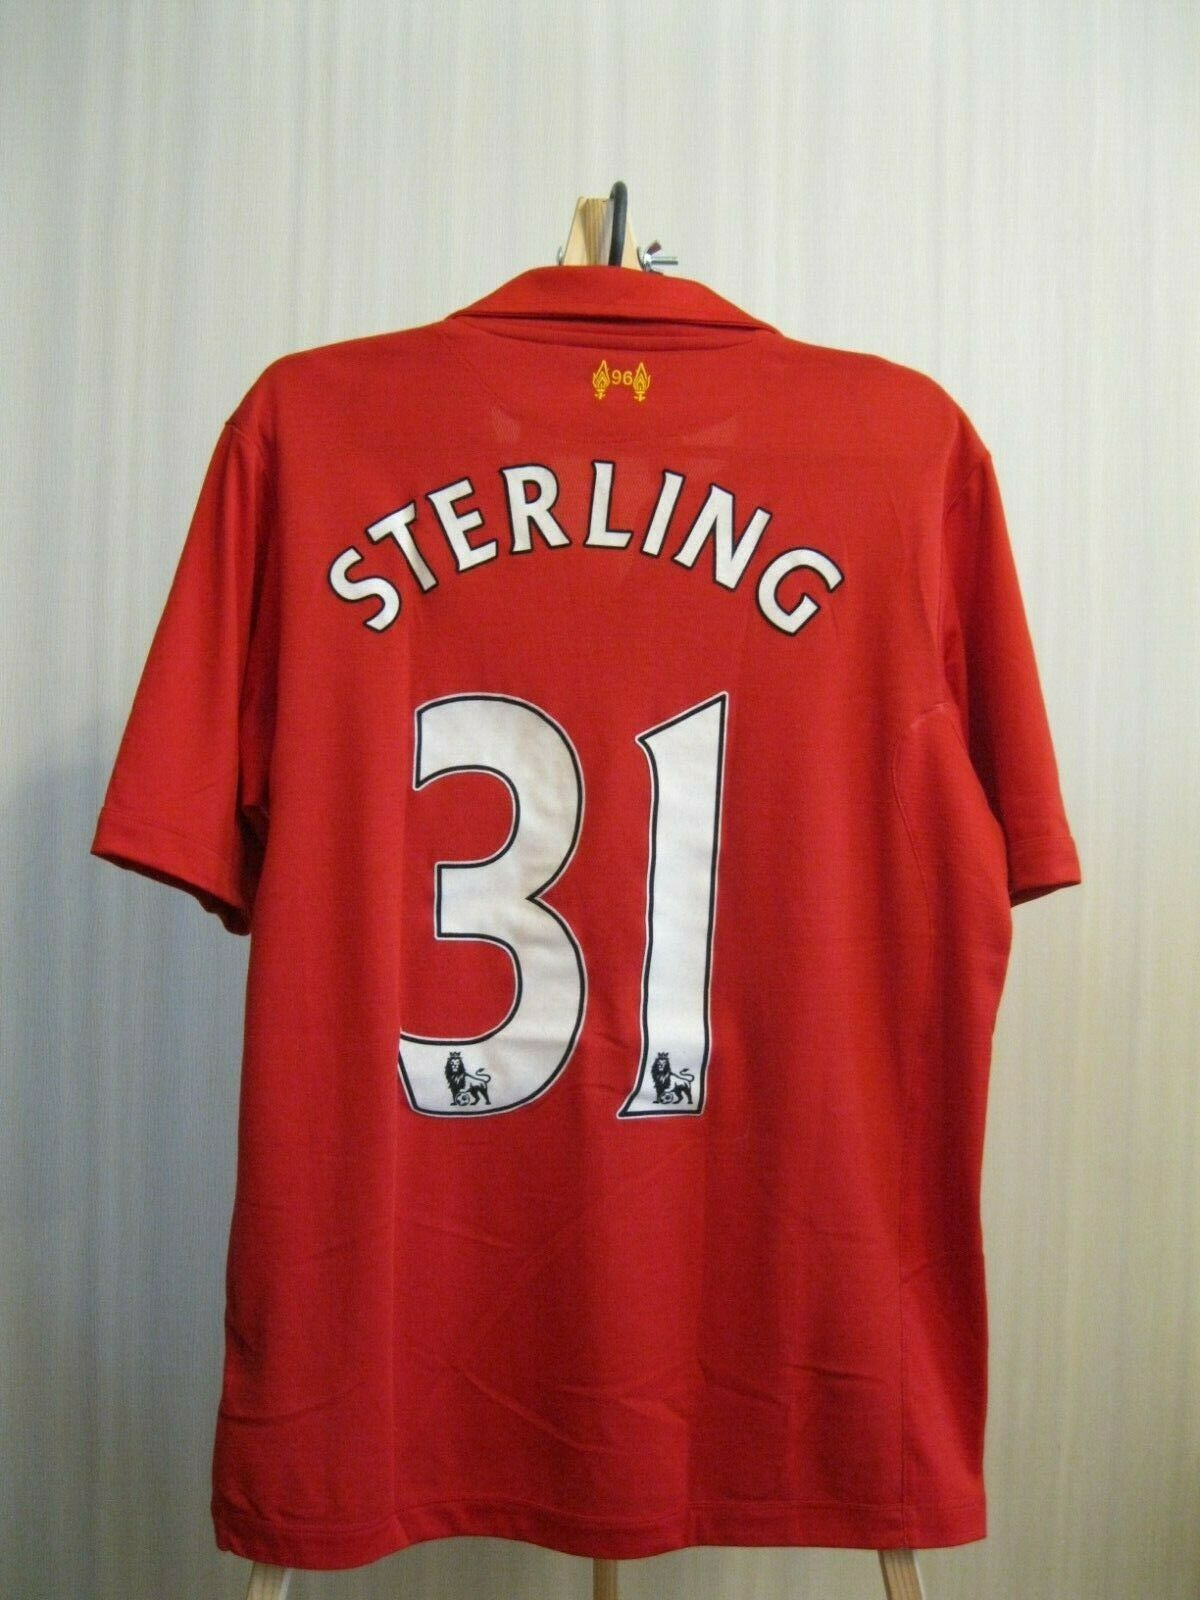 FC Liverpool #31 Sterling 2012/2013 Home Size M Warrior jersey